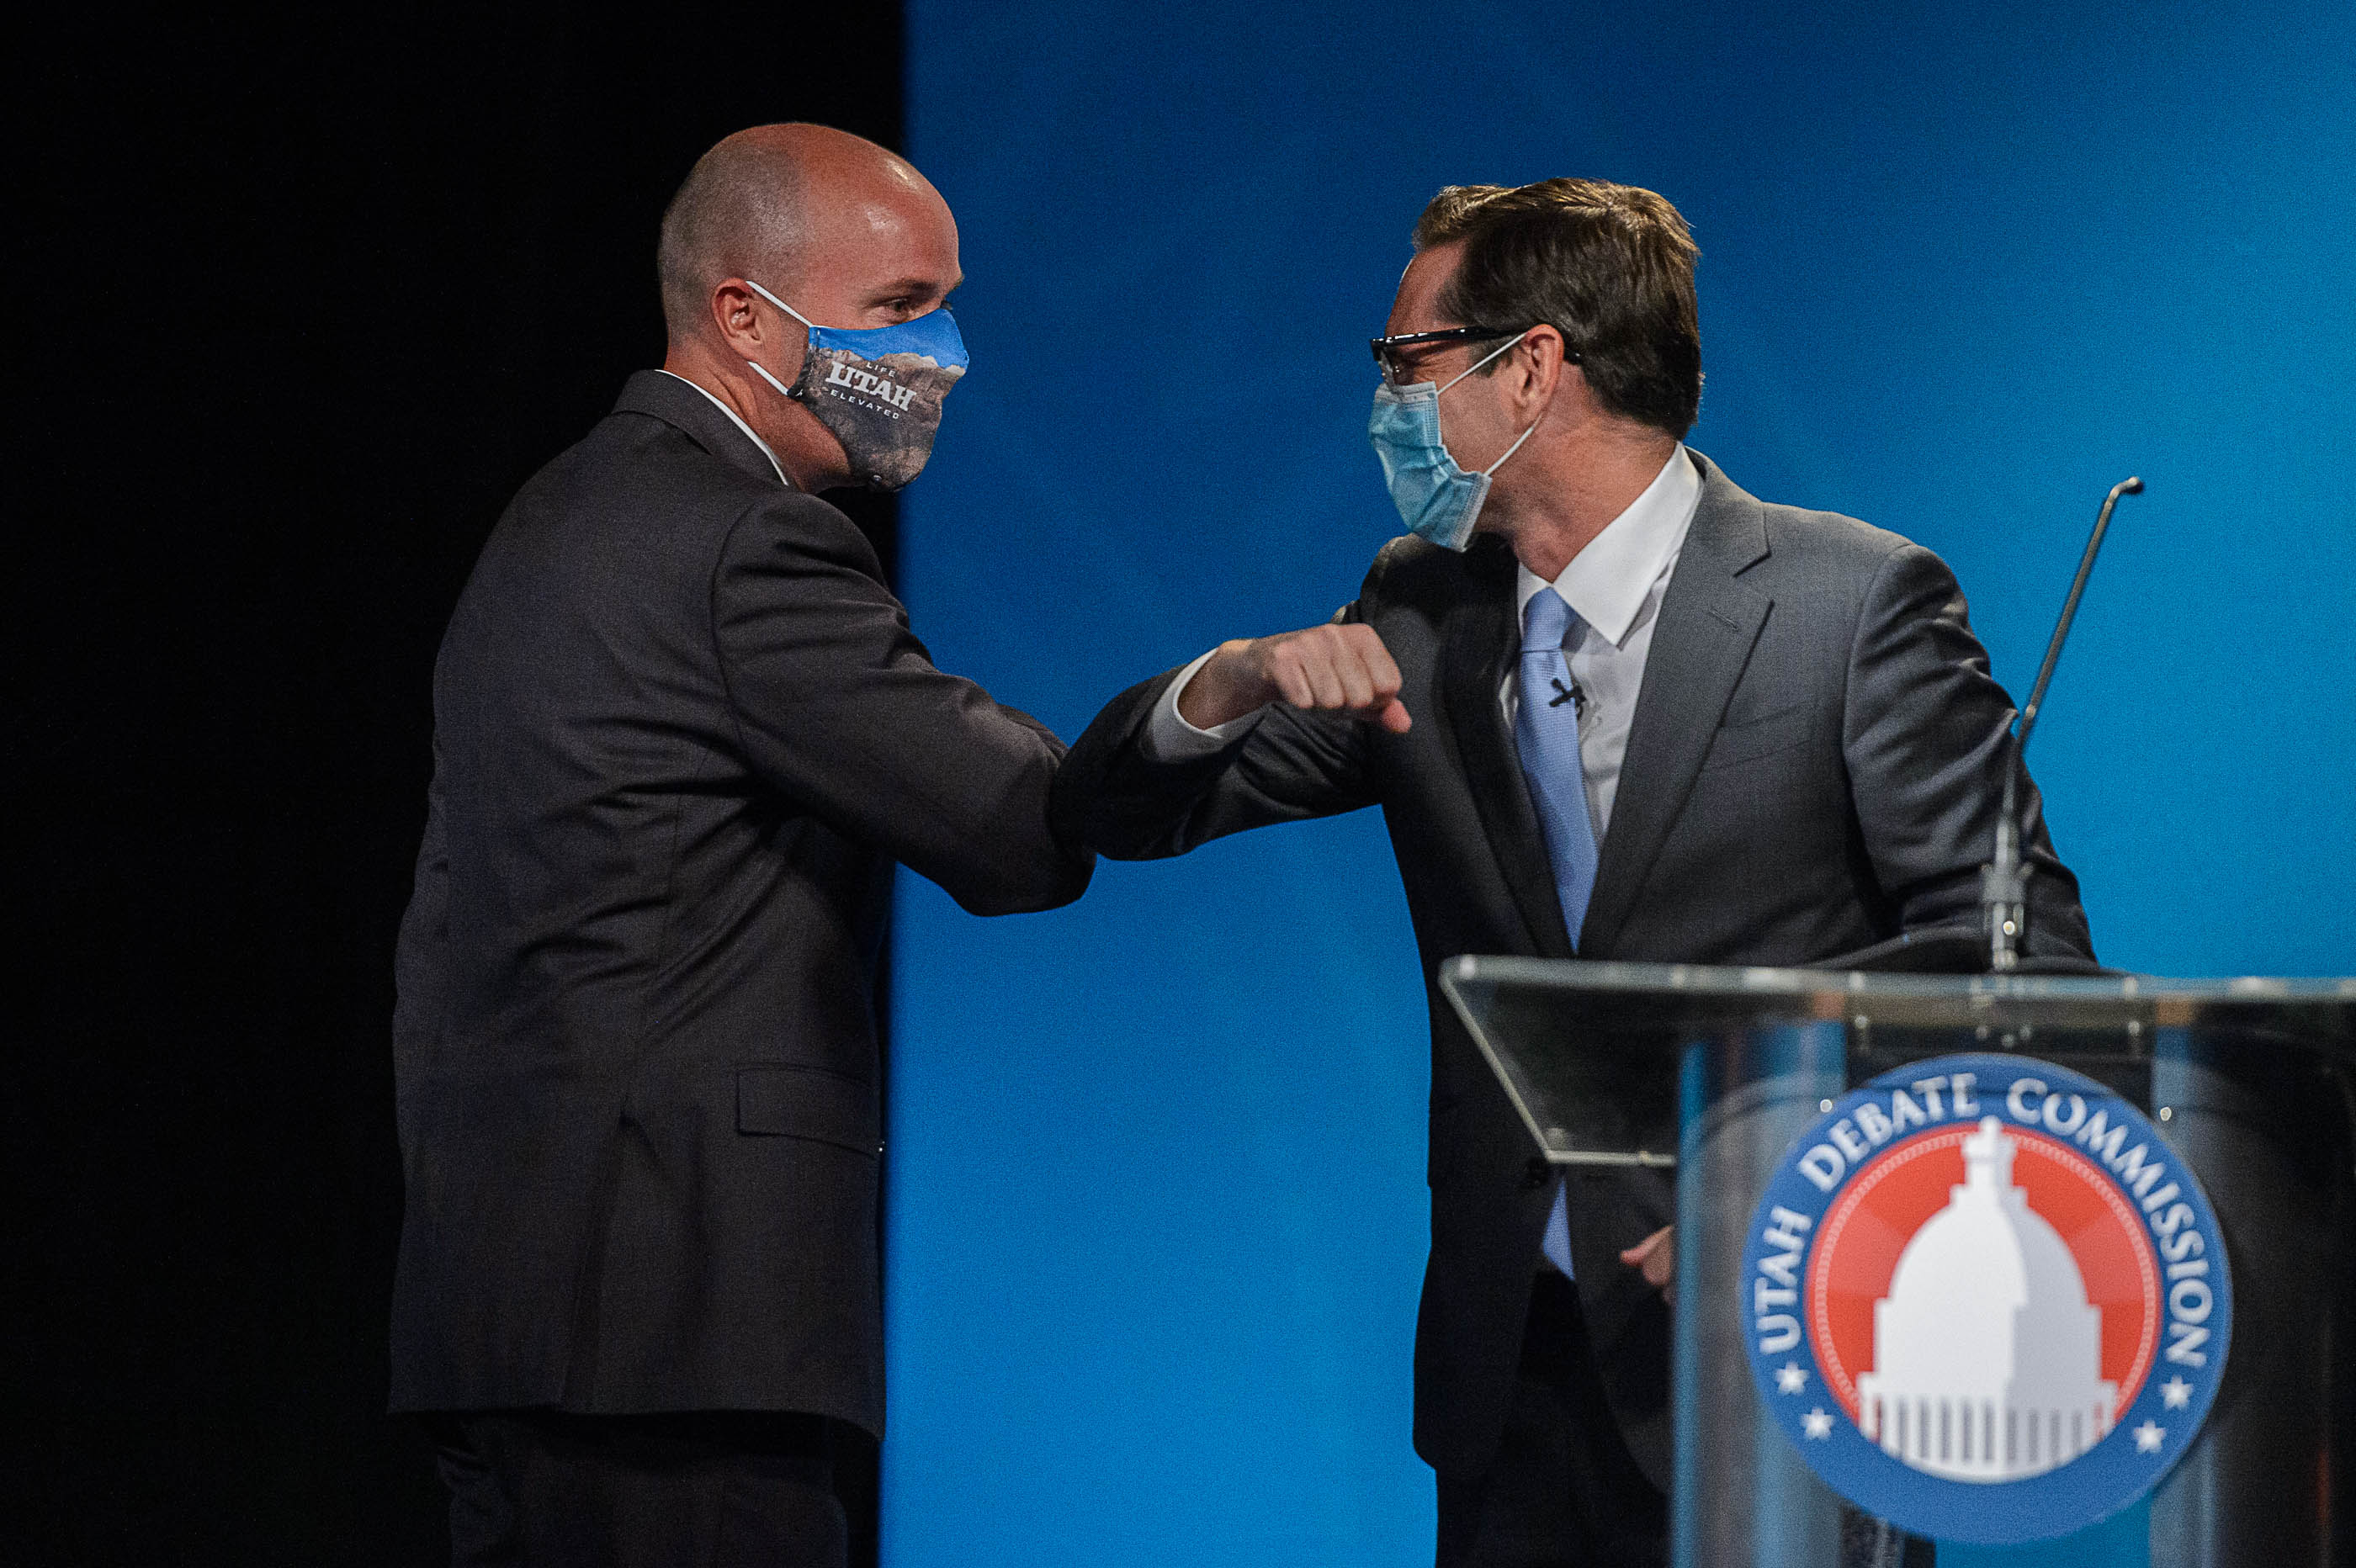 Lt. Gov. Spencer Cox and Chris Peterson, rivals to become Utah's next governor, bump elbows after facing each other in a prime-time debate in Salt Lake City on Tuesday, Sept. 29, 2020.